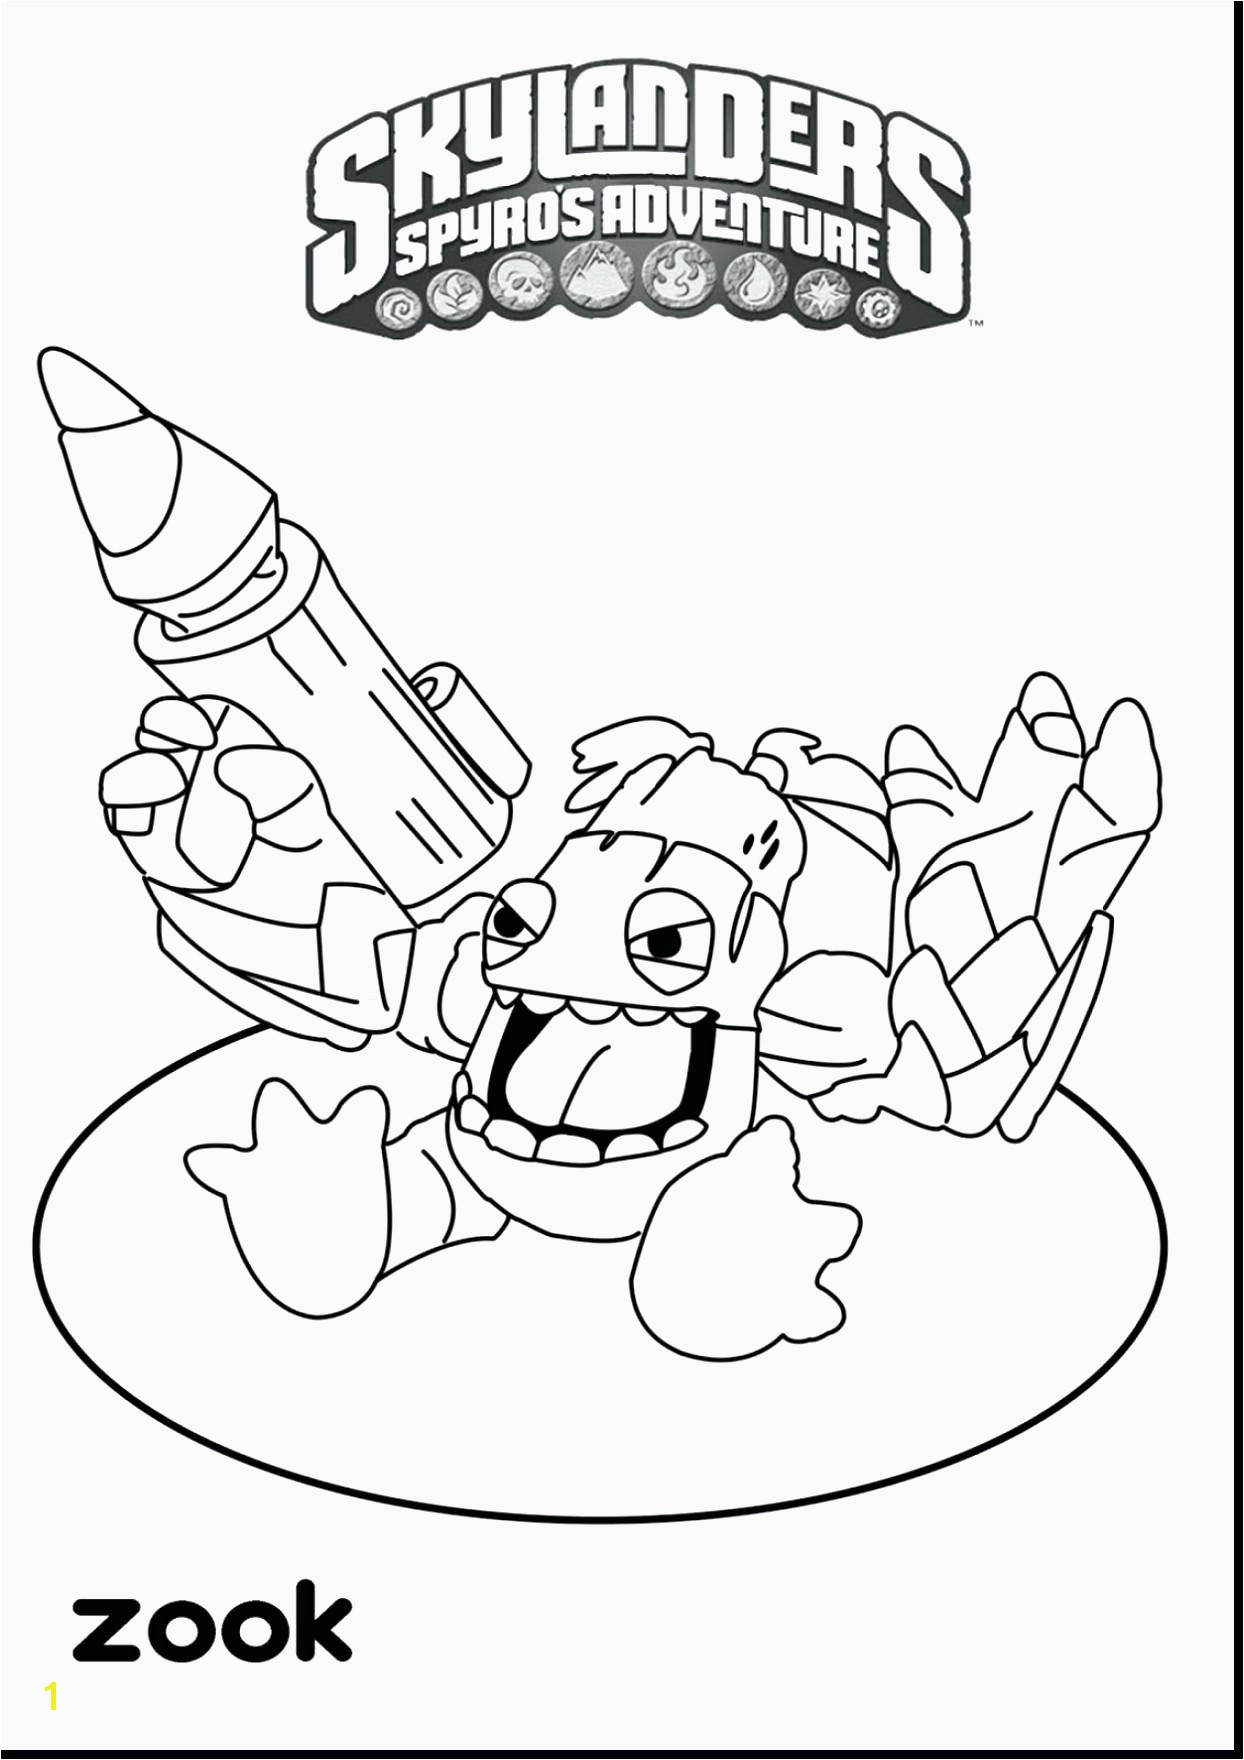 Www.coloring-pages-kids.com Www Coloring Pages for Kids Coloring Pages Printables Unique